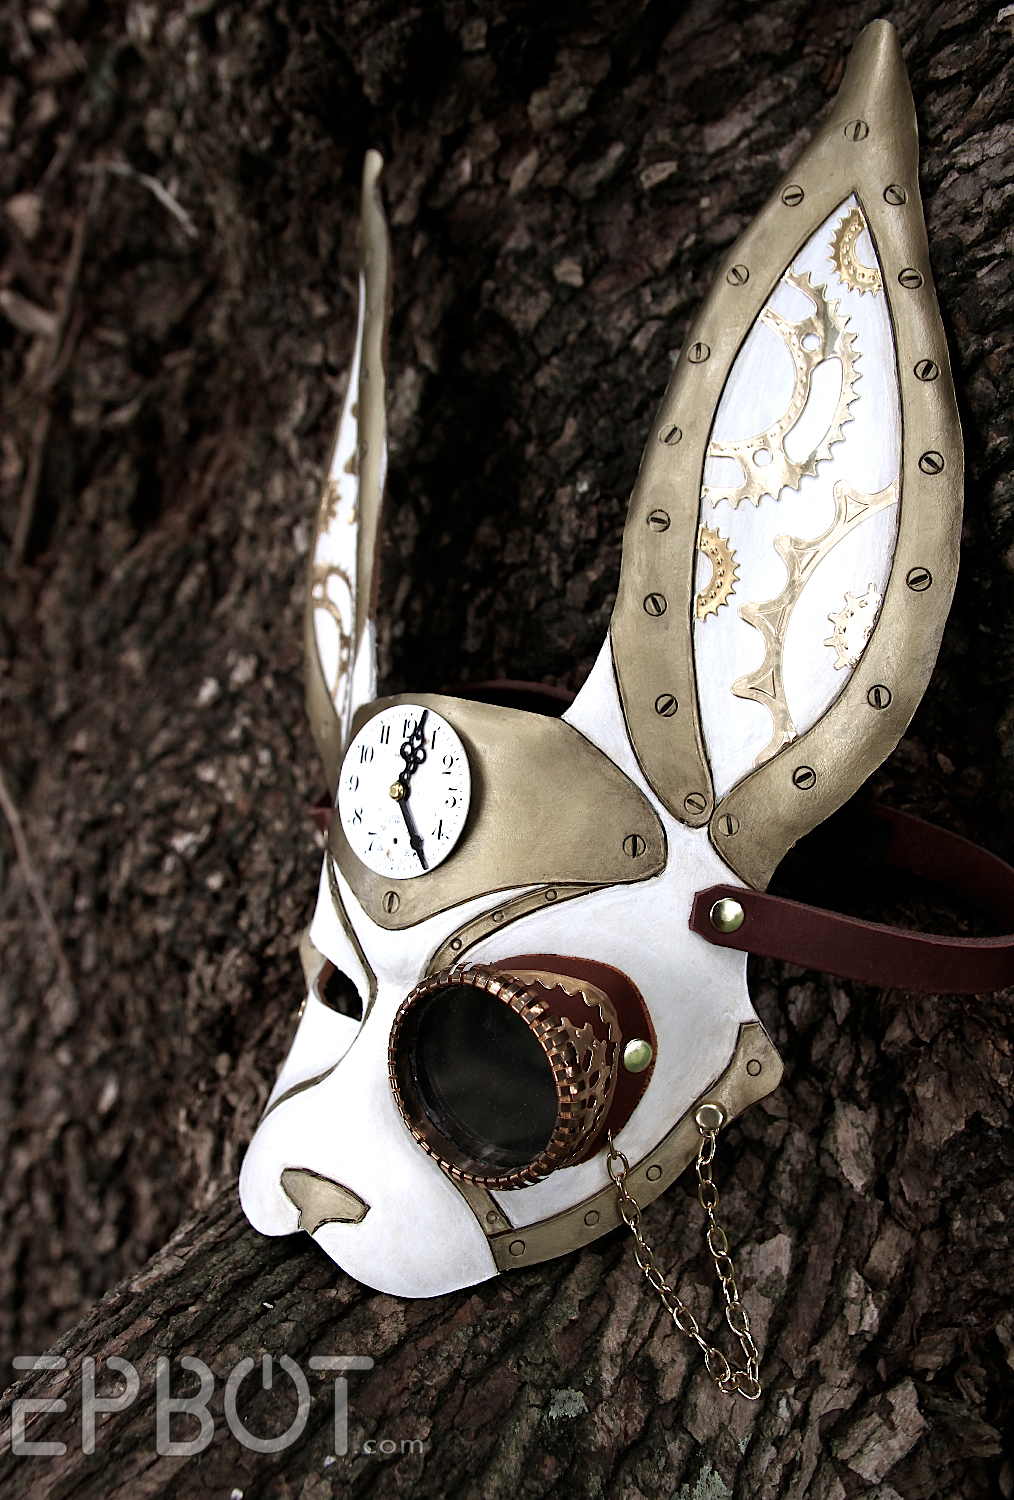 Epbot Down The Rabbit Hole My Next Cosplay Project